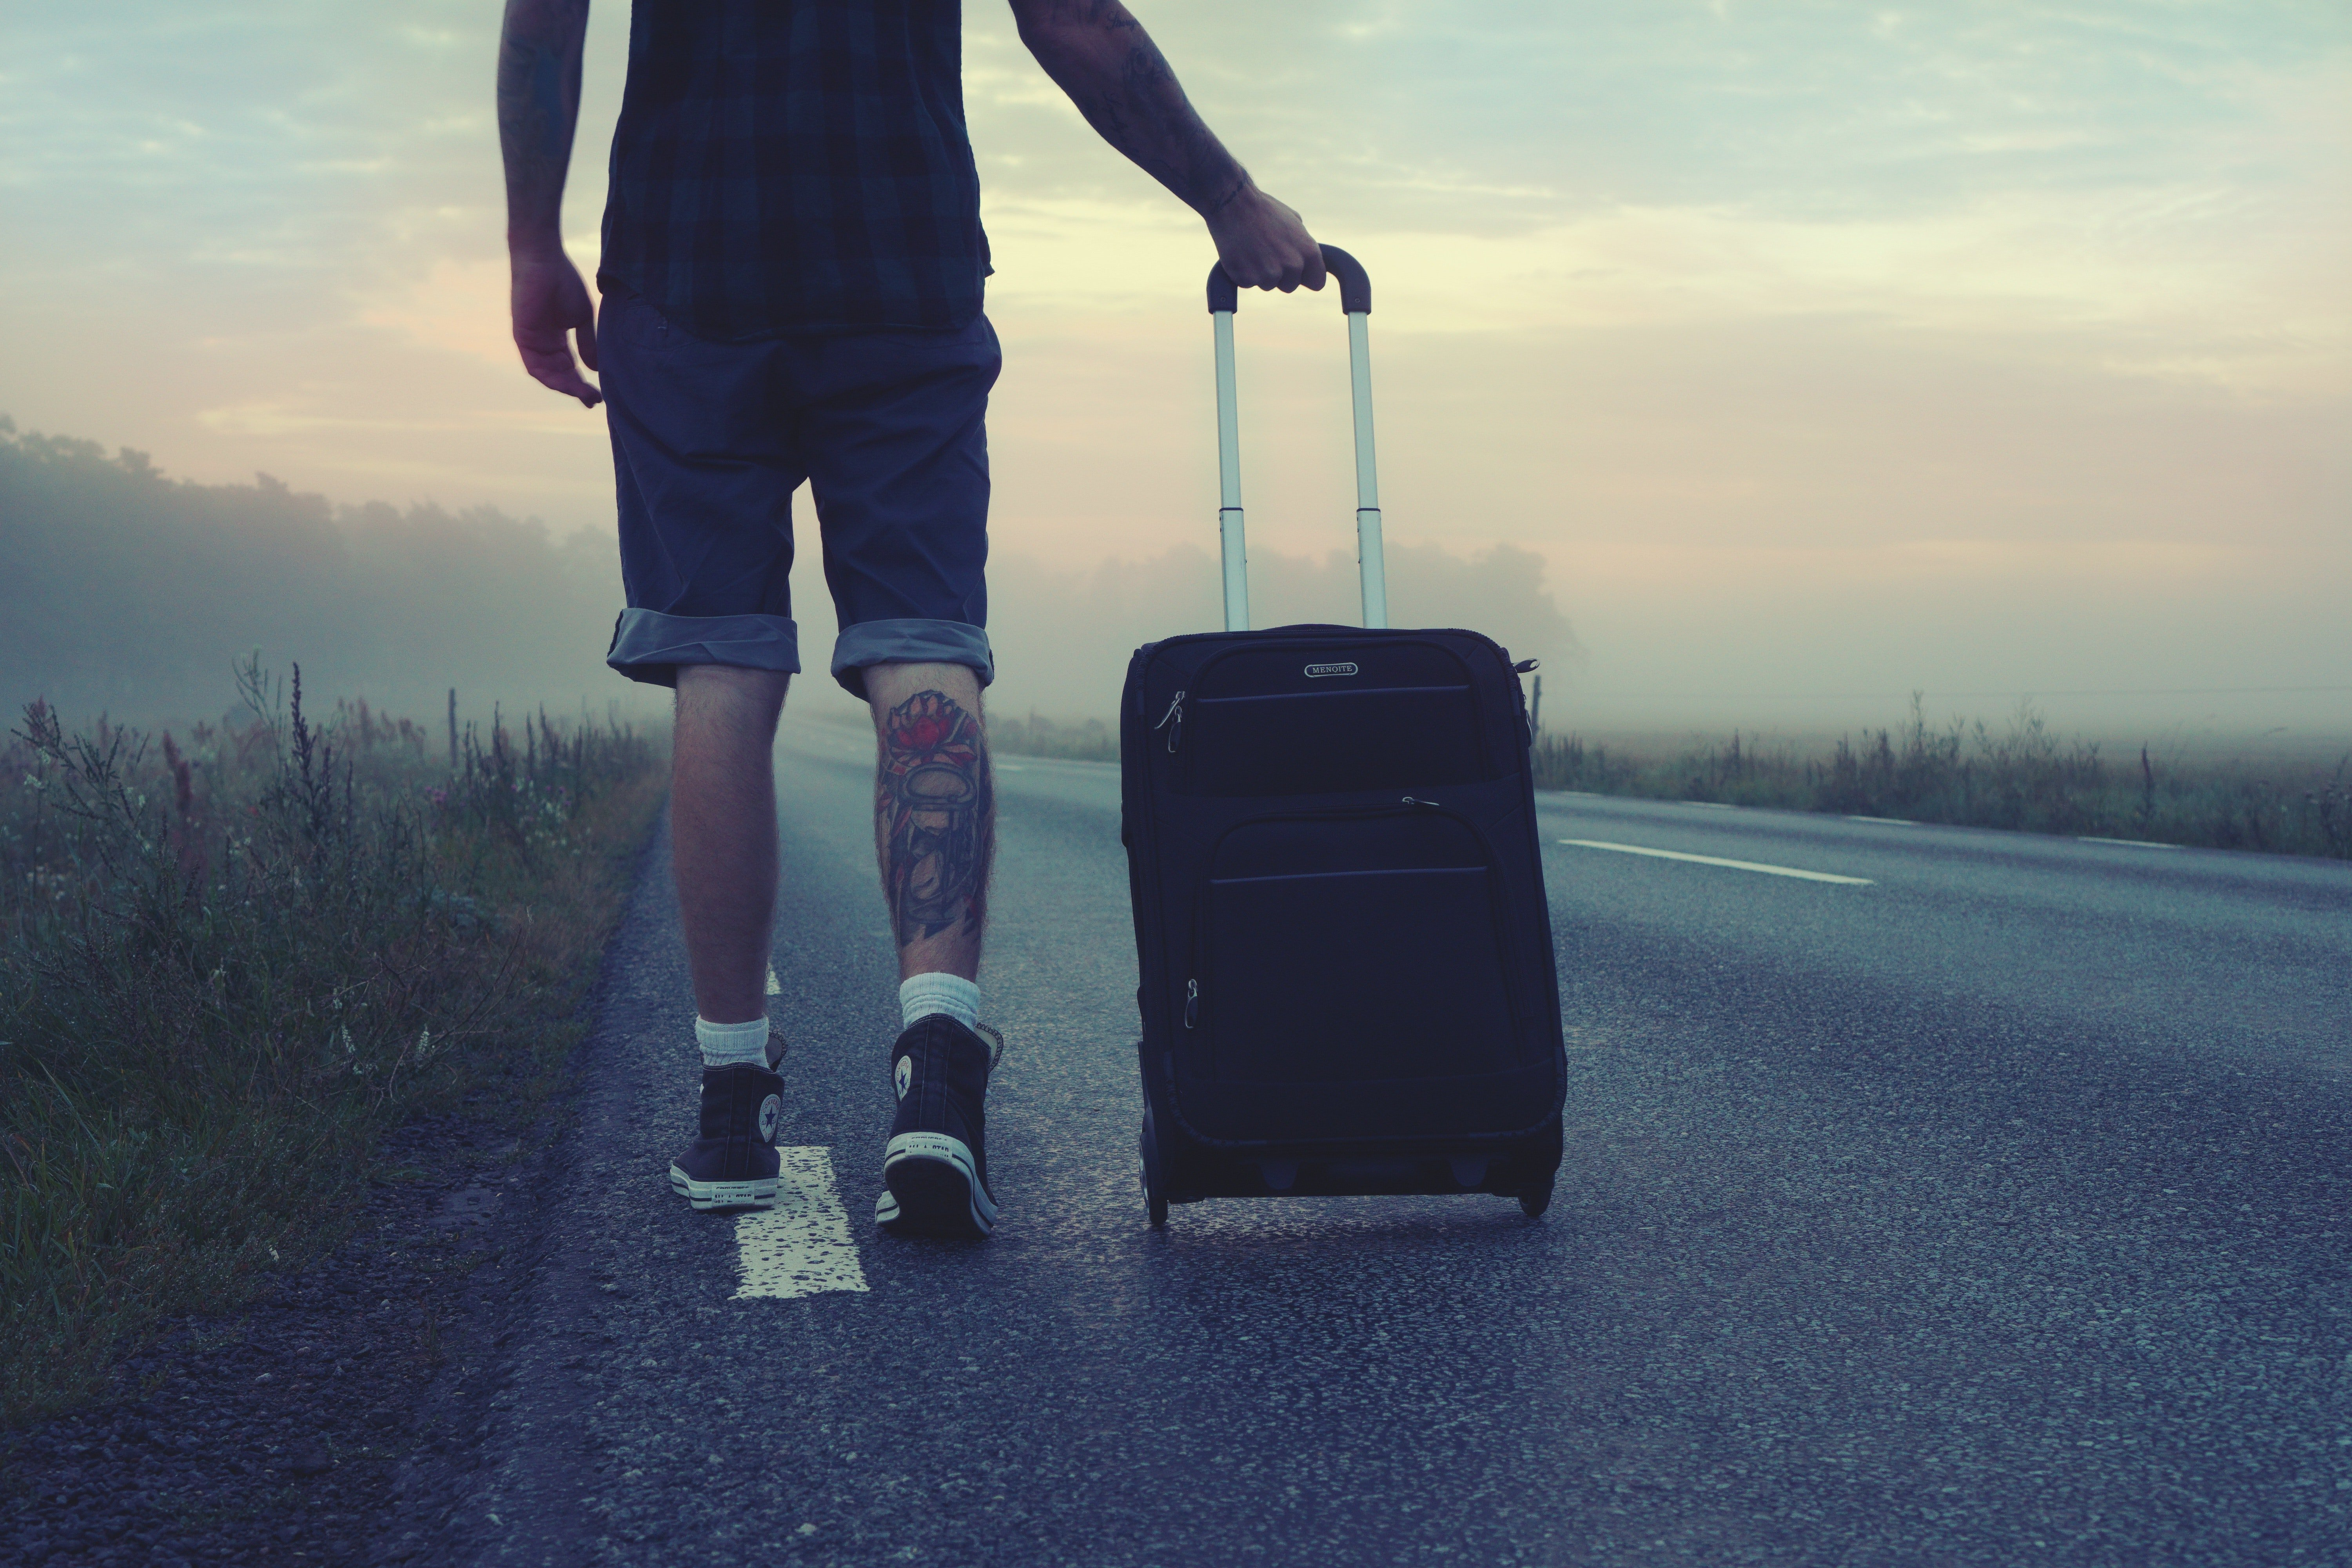 Man walking on an empty road with a black luggage | Photo: Pexels